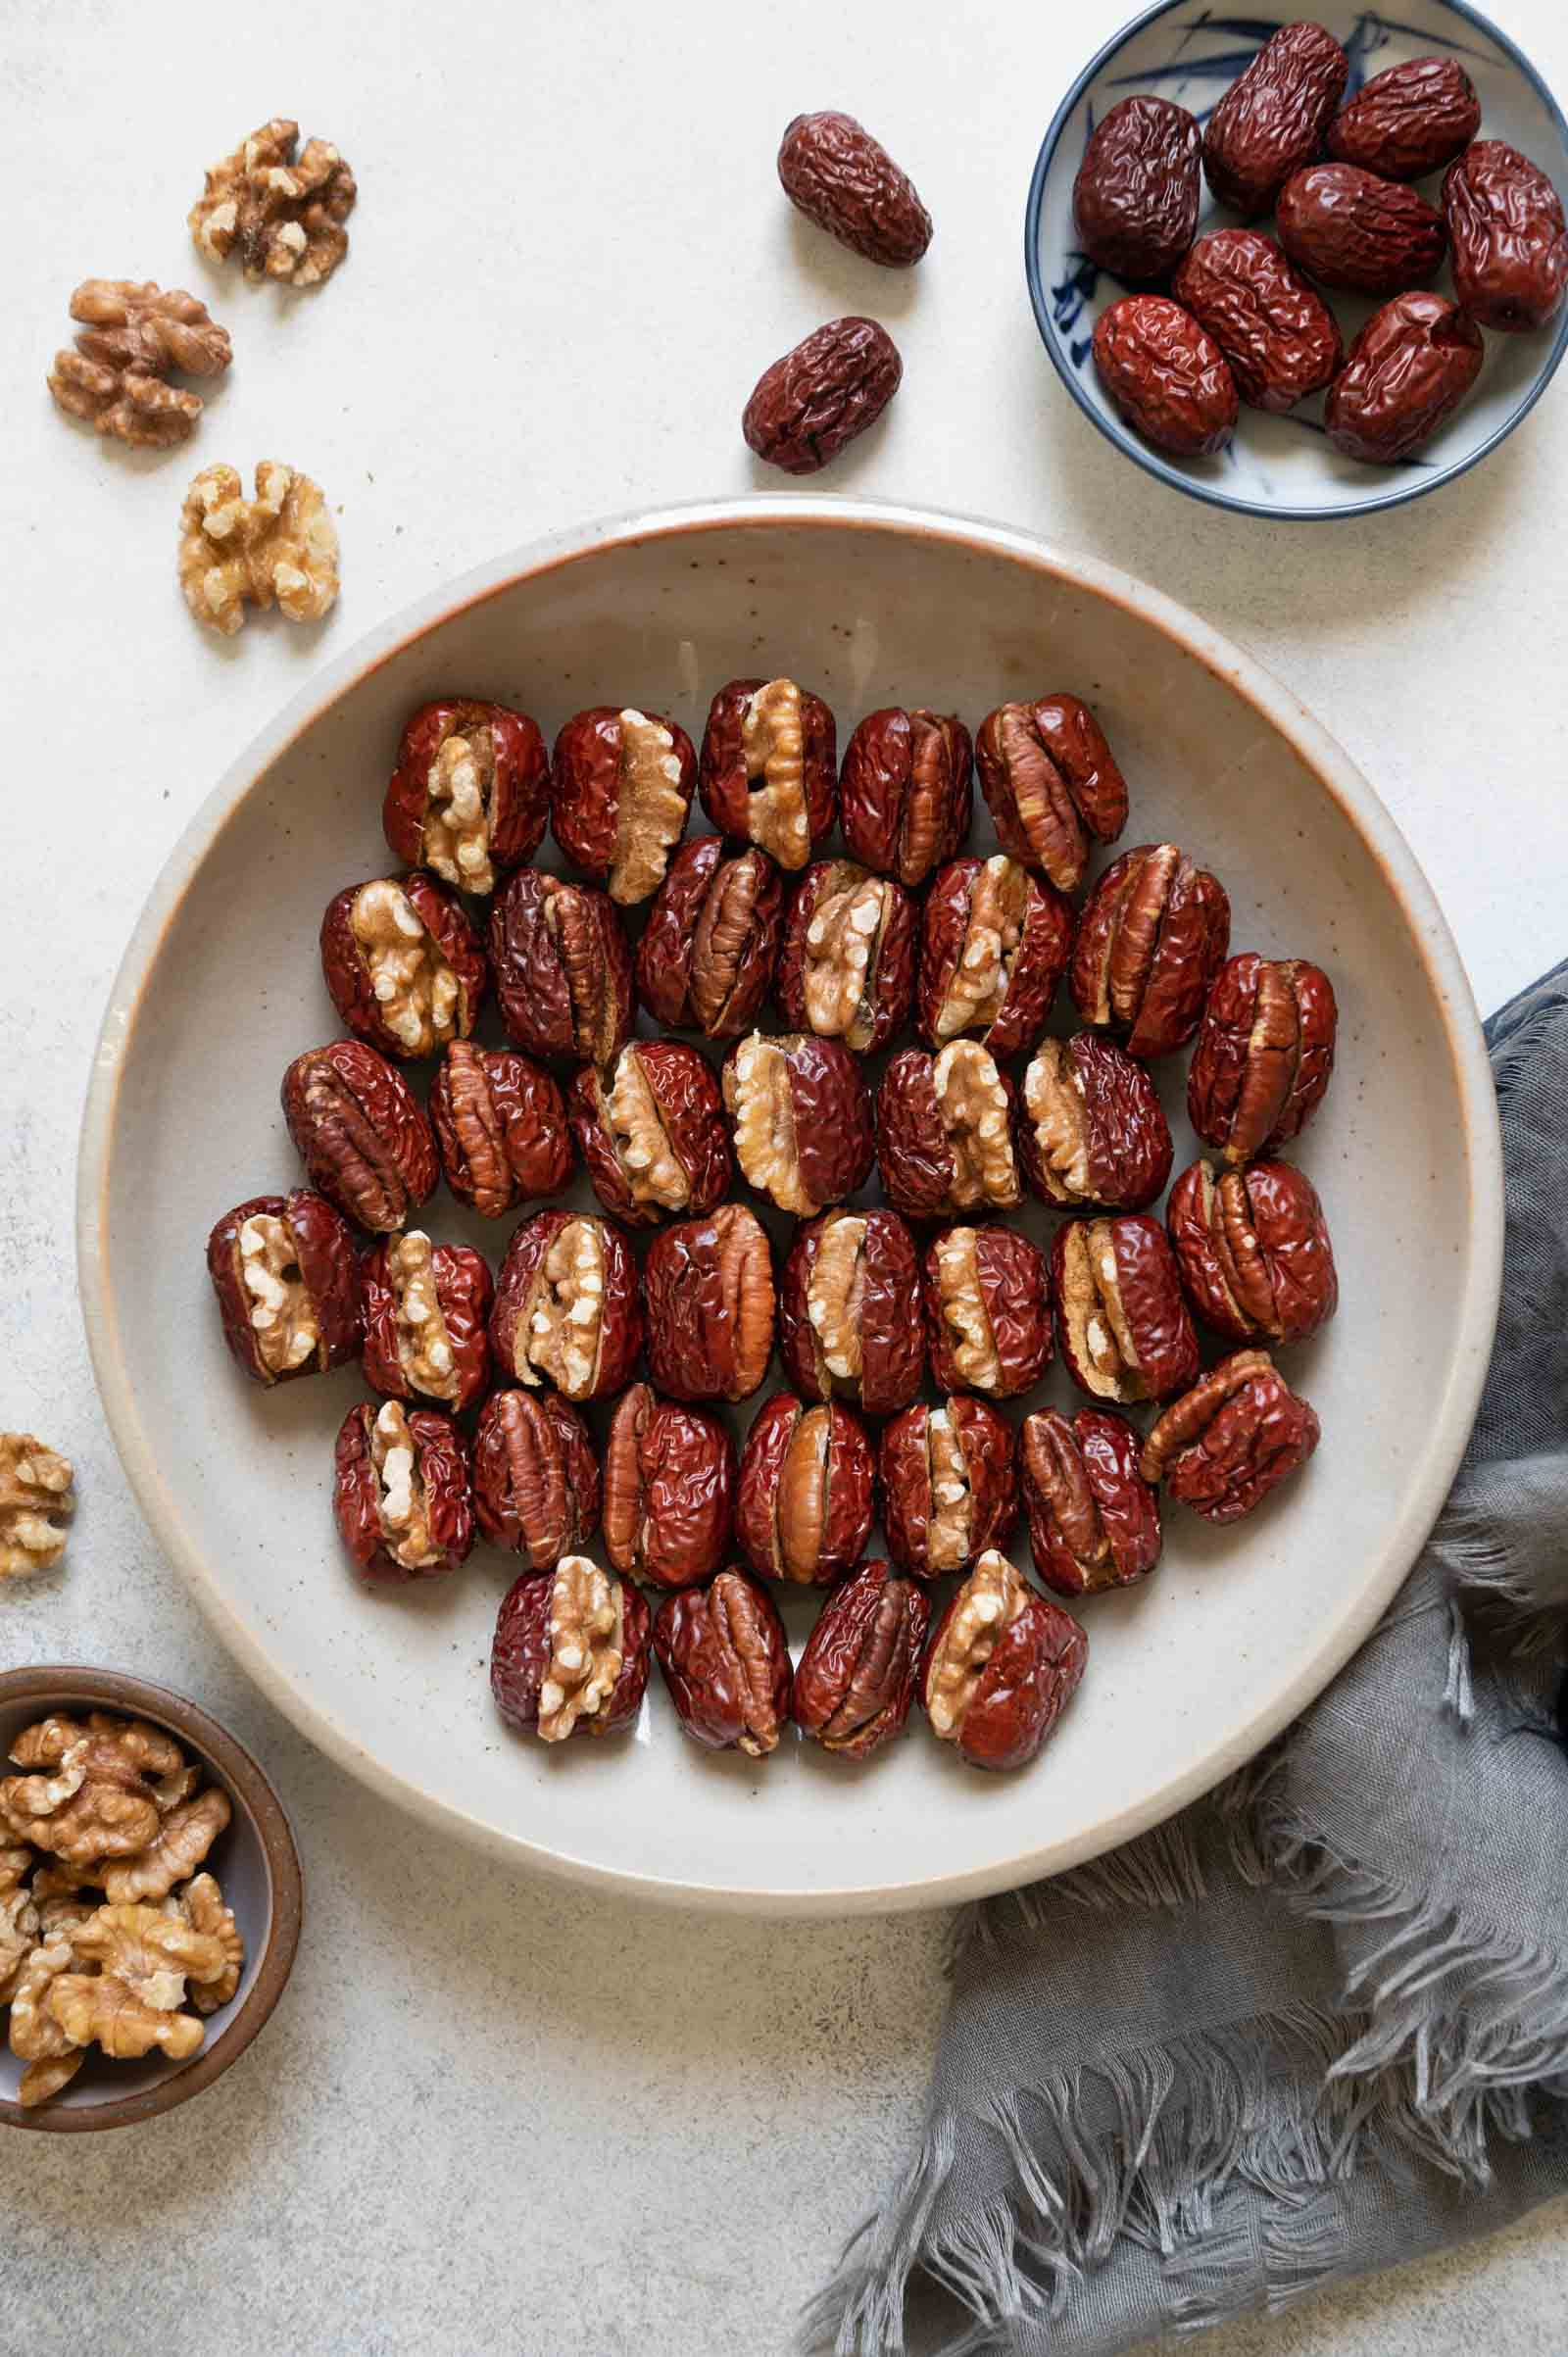 Stuffed Red Dates with Walnuts and Pecans in a plate